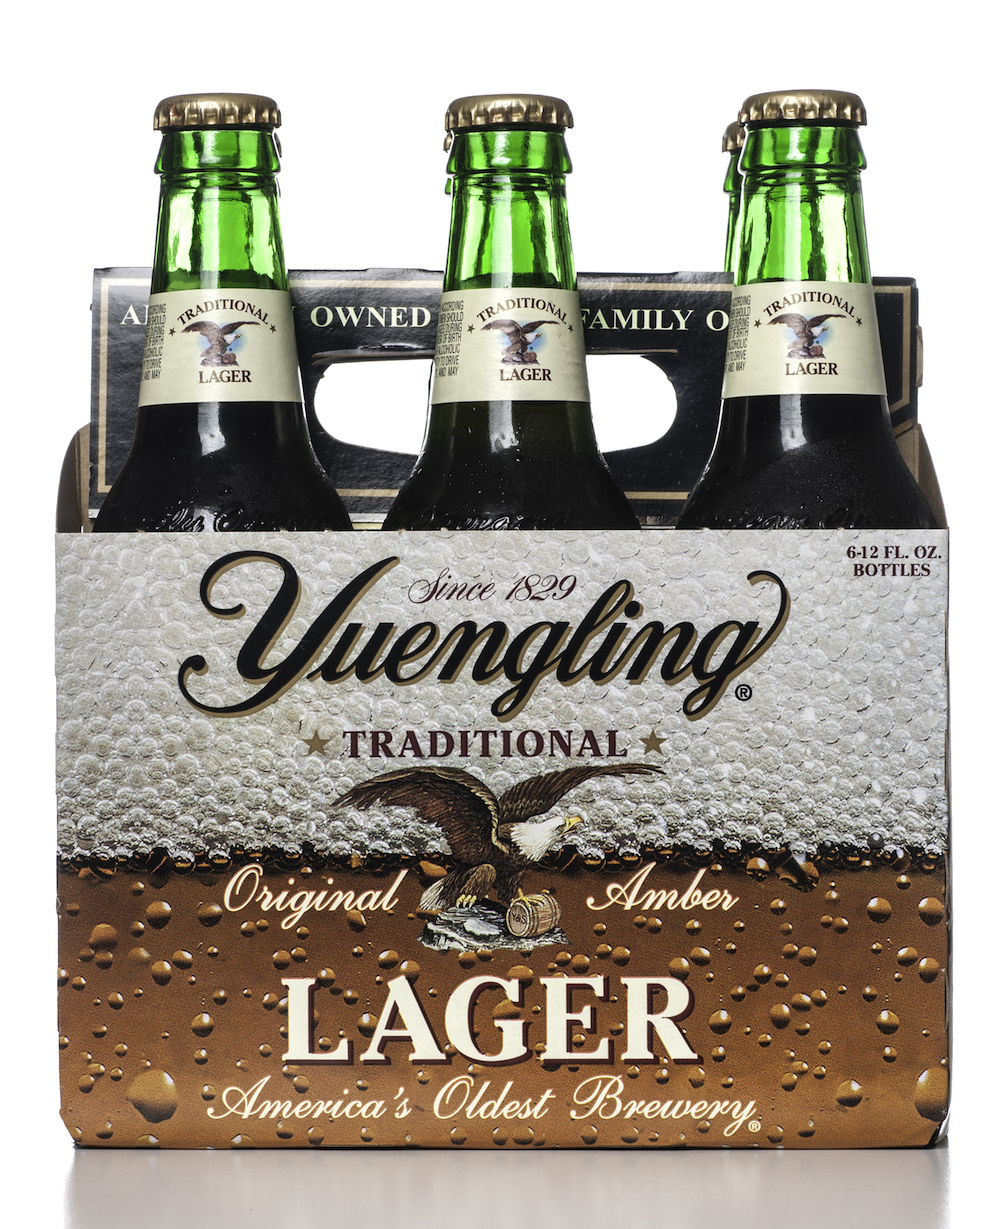 Yuengling Traditional Lager beer